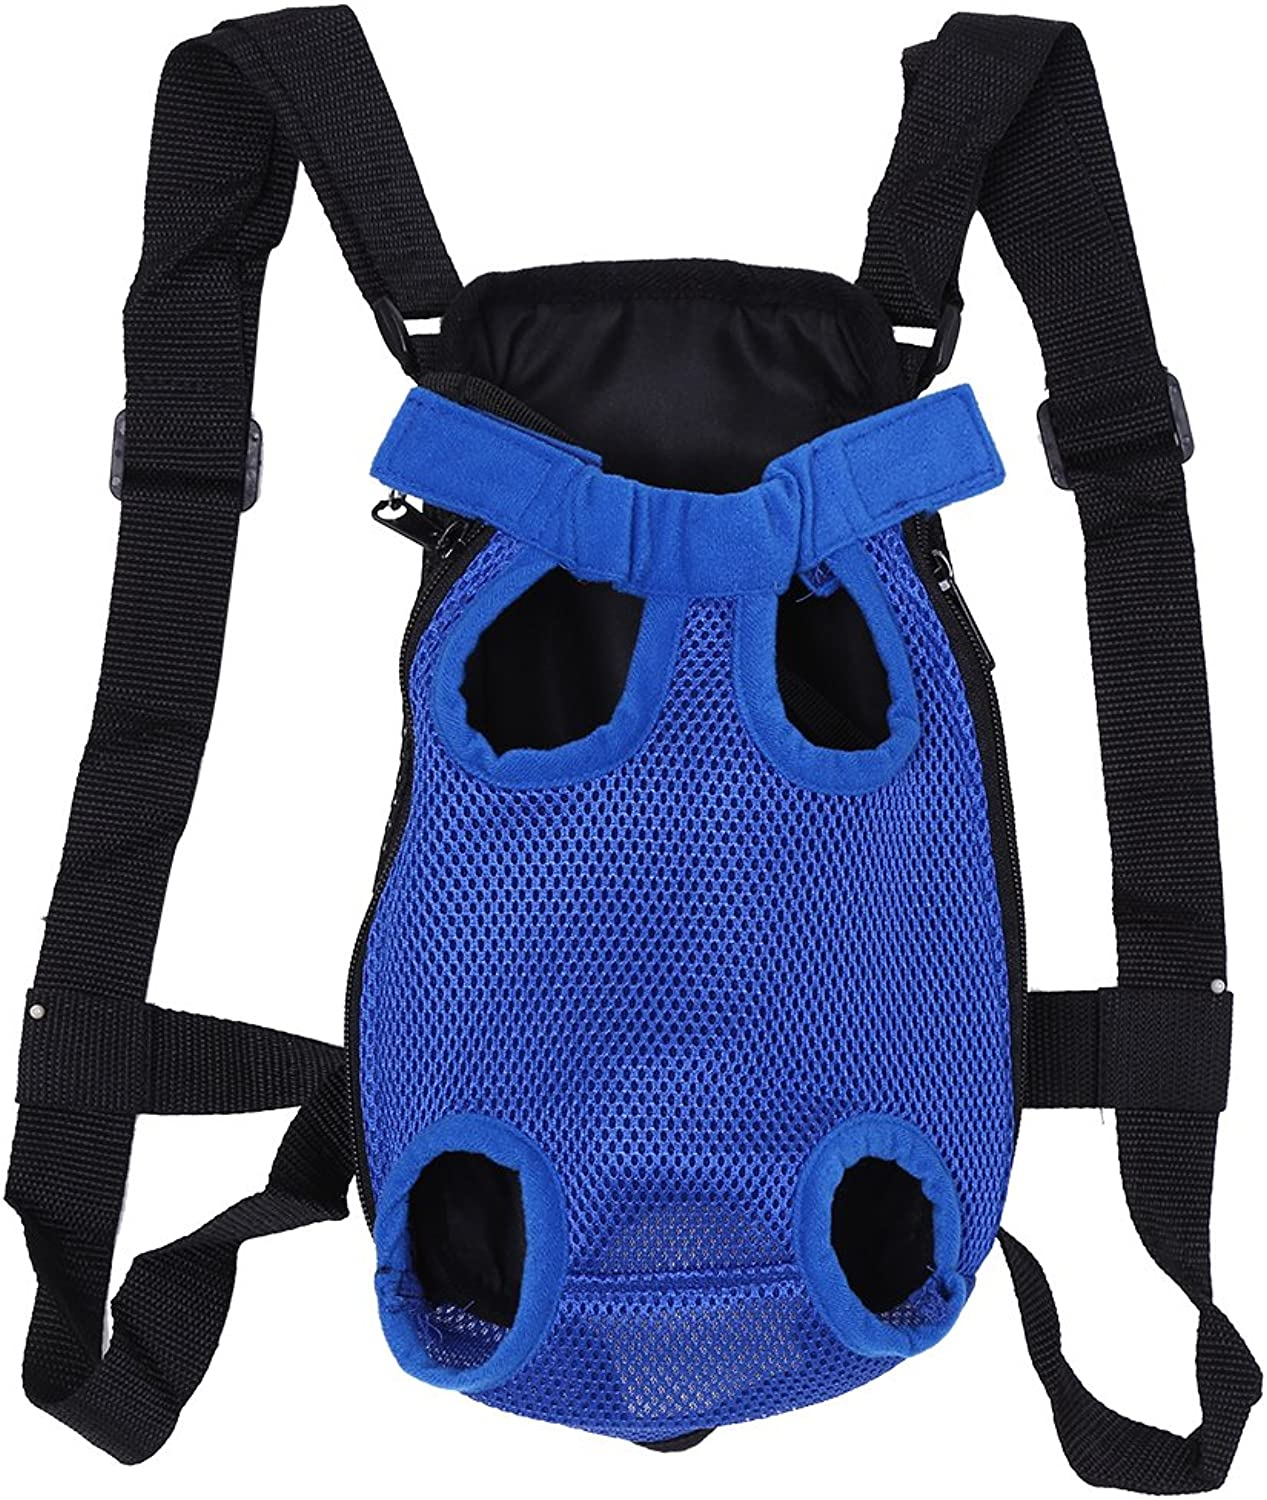 Pet Backpack, Fashionable Durable Dog Five Holes Front Chest Tote Carrier Net Bag(Dark bluee S)